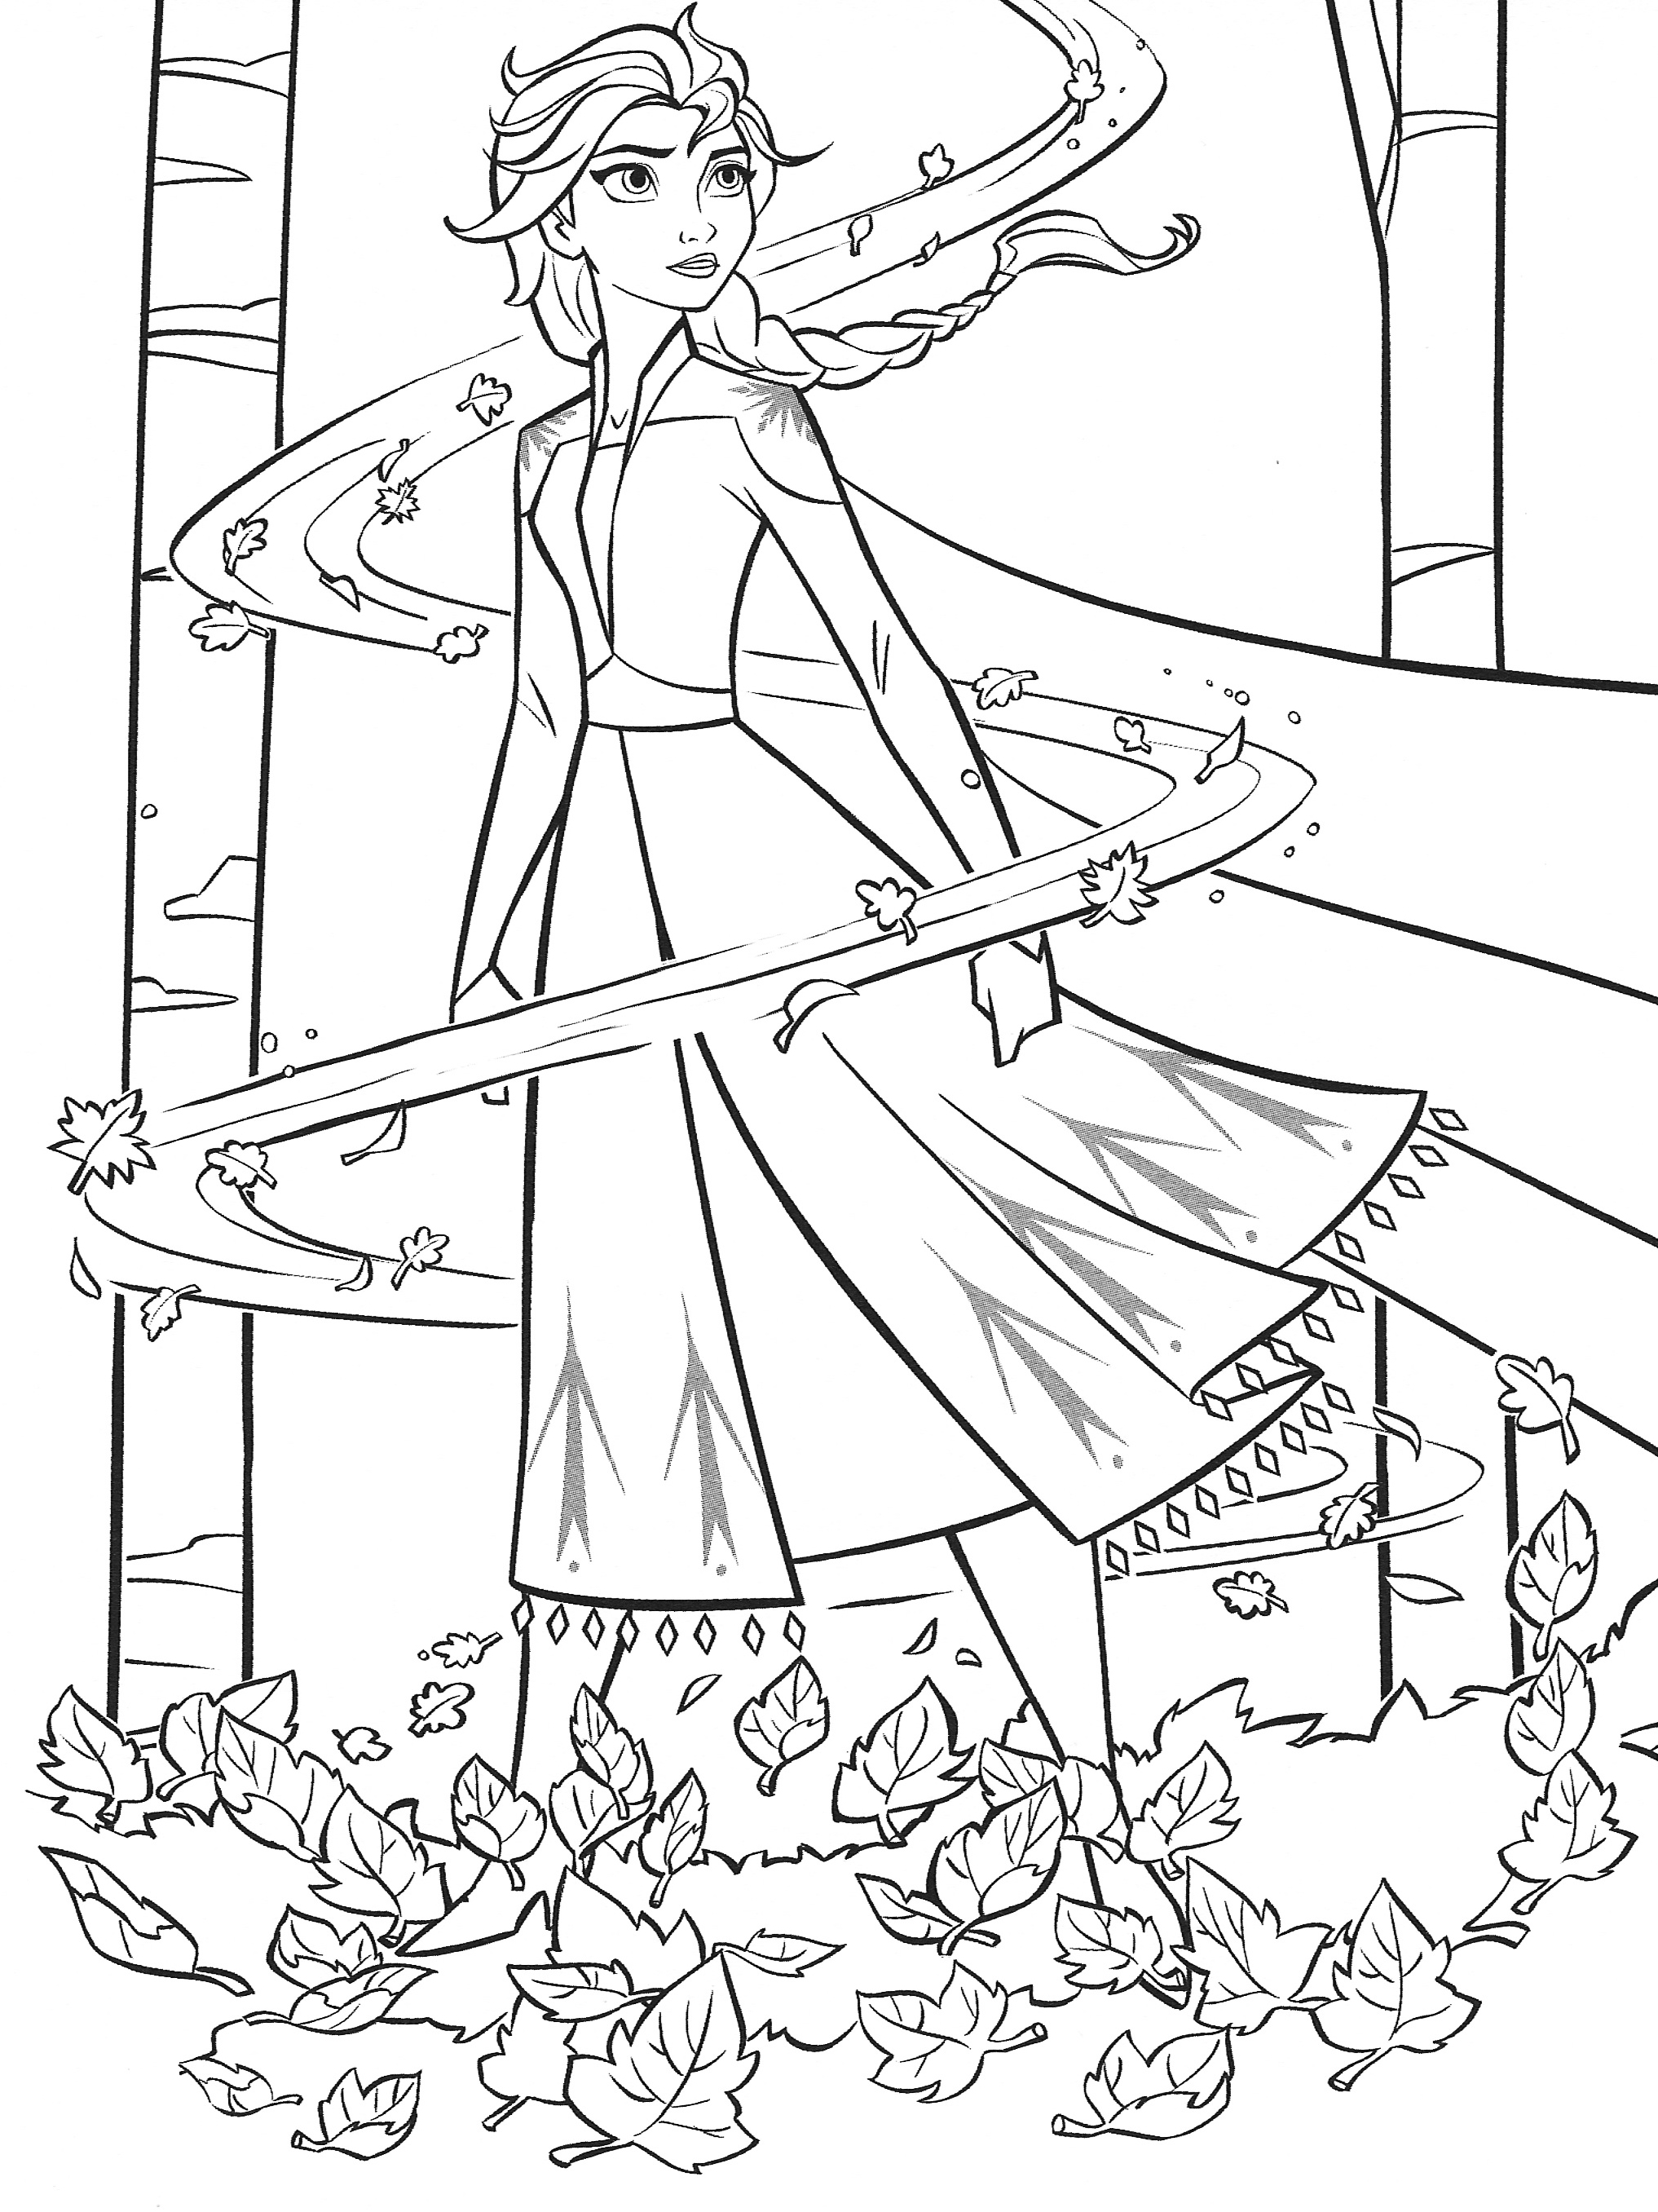 frozen colouring pages frozen coloring pages disneyclipscom colouring pages frozen